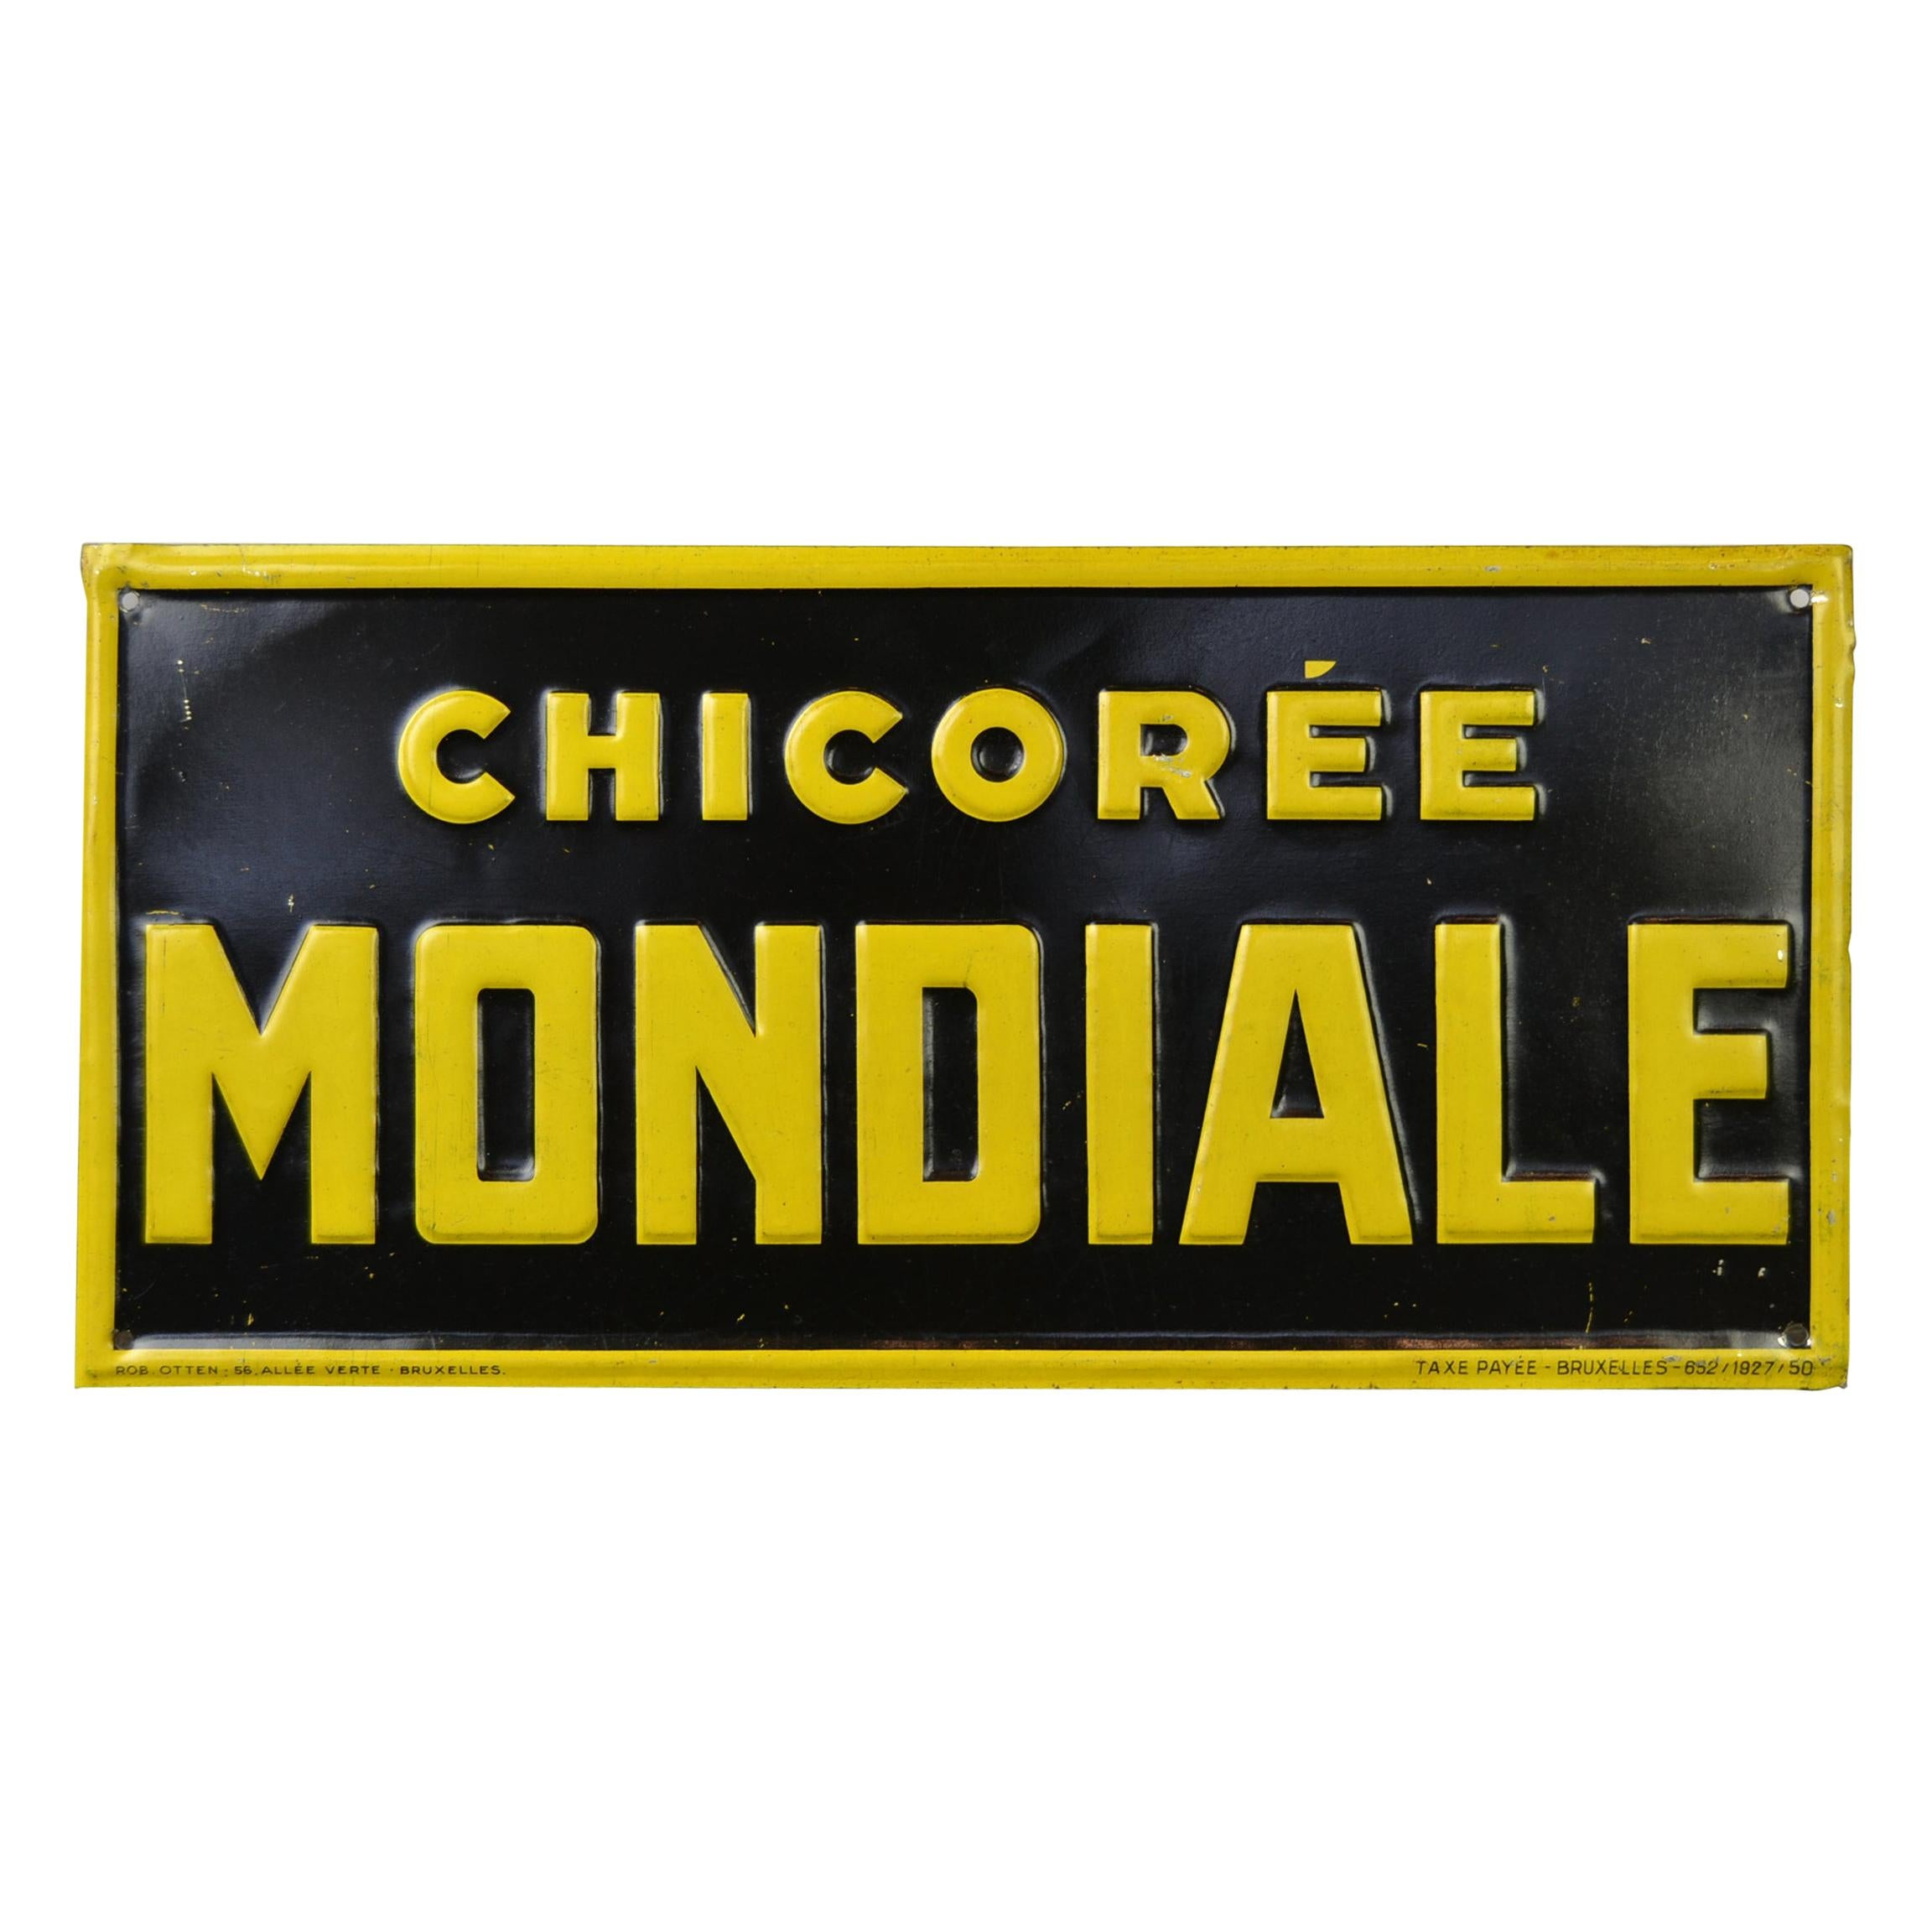 1920s Tin Advertising Sign for Chicorée Mondiale by Rob Otten, Belgium